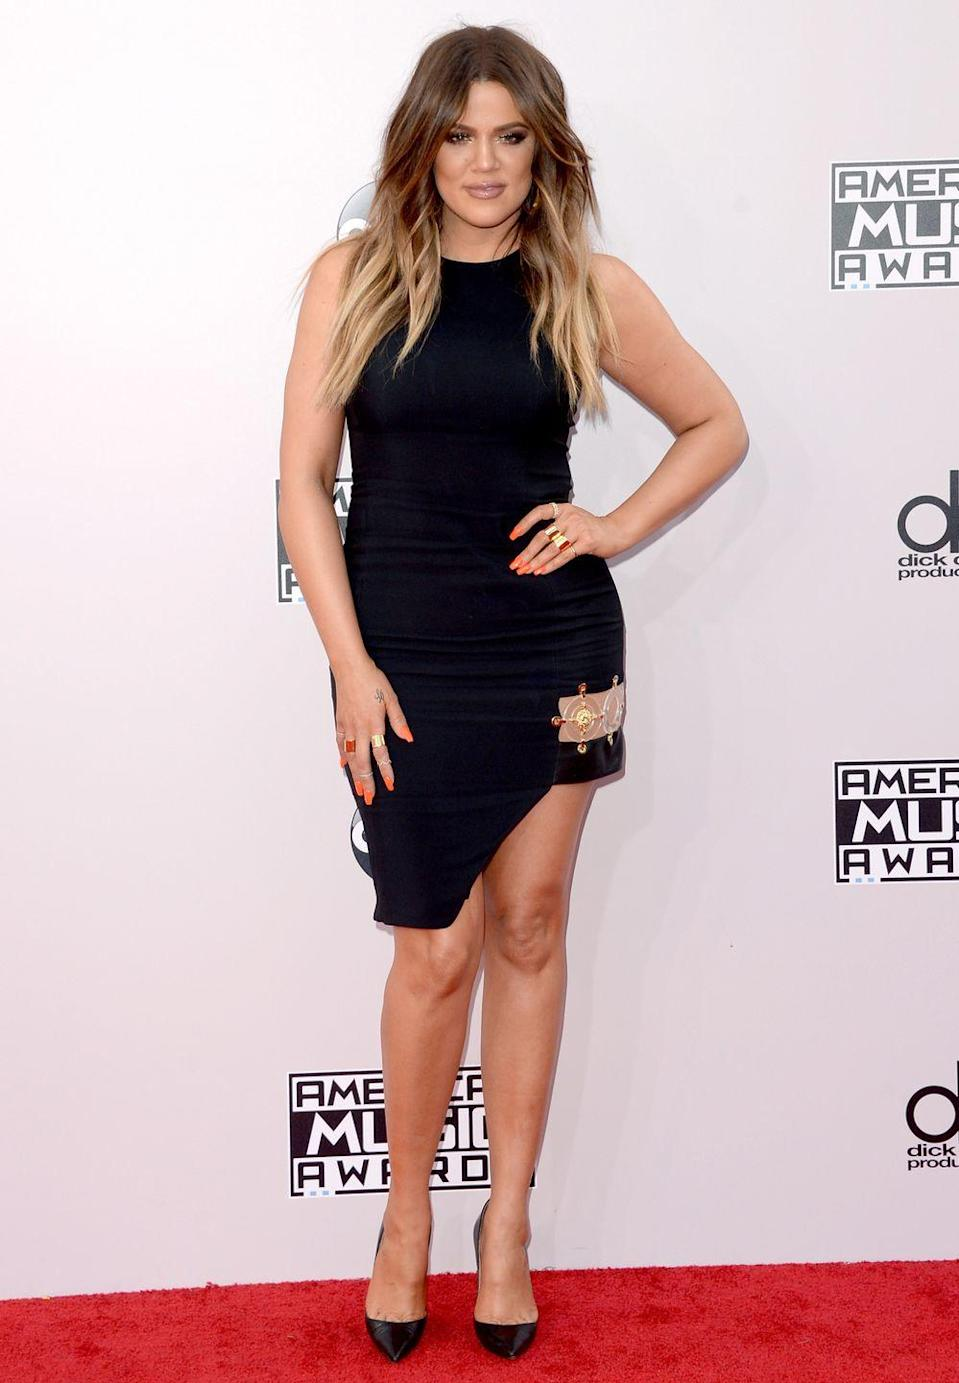 """<p>""""I definitely think the fashion industry, and people in general, look at me more now that I've lost weight,"""" Khloé<span class=""""redactor-invisible-space""""> told <em><a href=""""http://www.harpersbazaar.com/culture/features/a16006/khloe-kardashian-interview/"""" rel=""""nofollow noopener"""" target=""""_blank"""" data-ylk=""""slk:Harper's Bazaar US"""" class=""""link rapid-noclick-resp"""">Harper's Bazaar US</a></em></span>. """"Even on shoots, I would never have options for clothing. There would always be this attention on Kourtney and Kim, but I was too much work for [stylists] or they had nothing in my size. </p><p>""""I wasn't even that crazy big!""""</p>"""